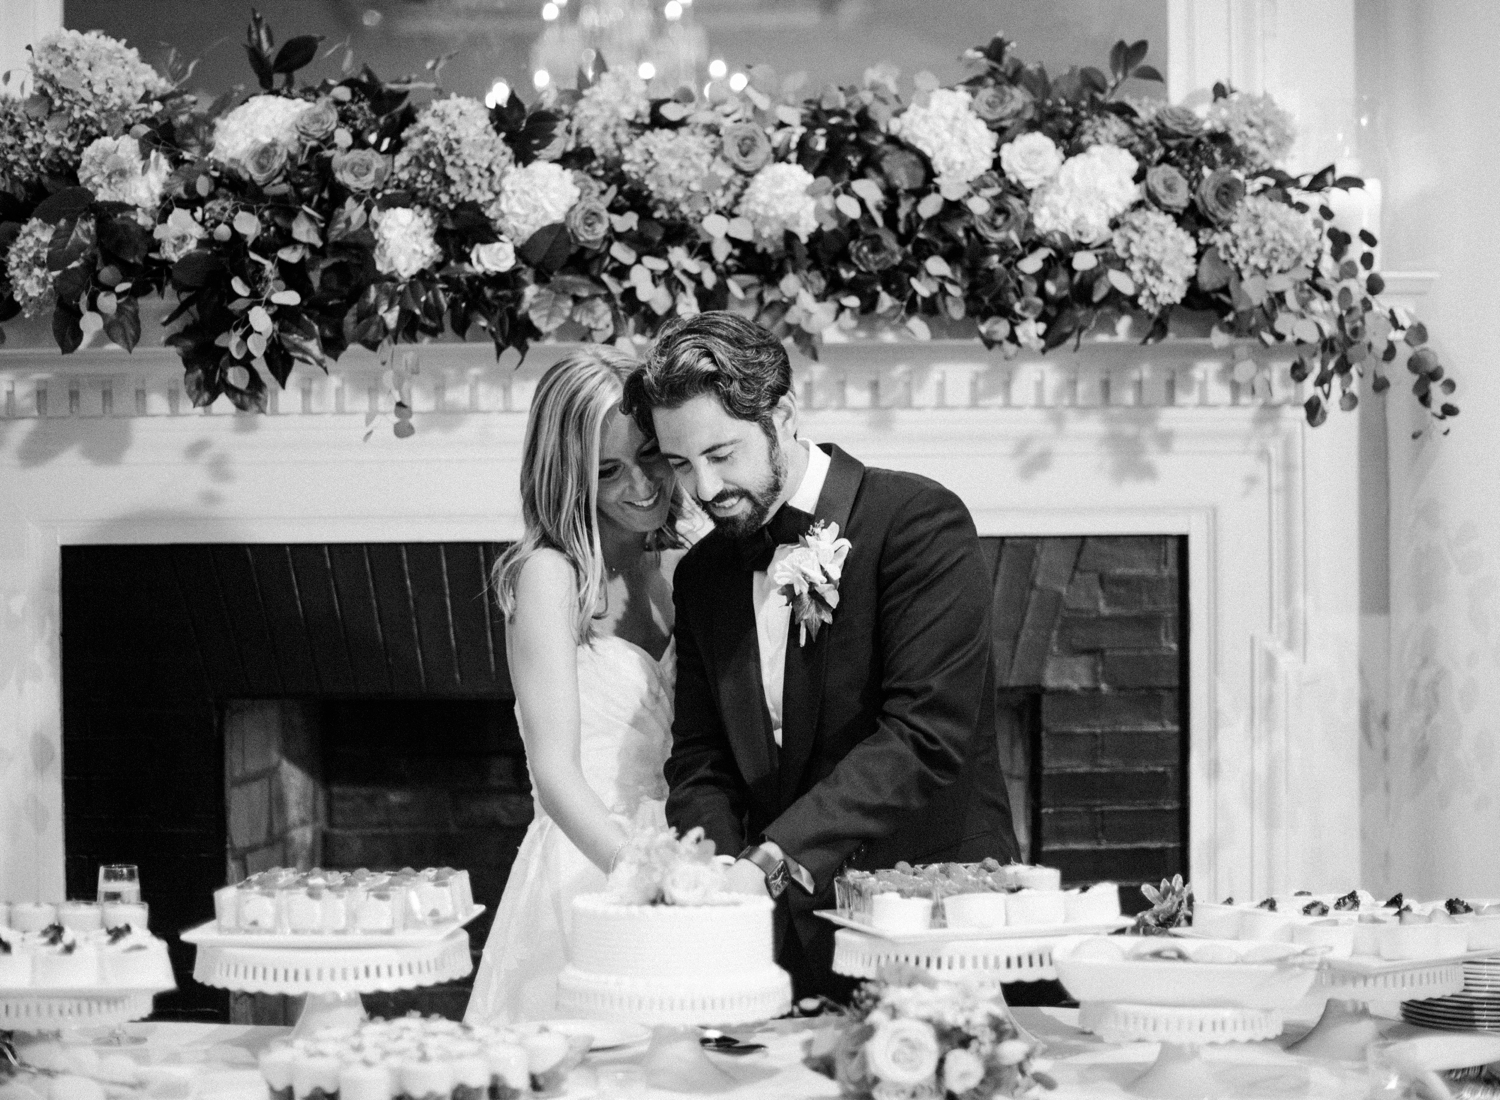 cake cutting black and white chevy chase club